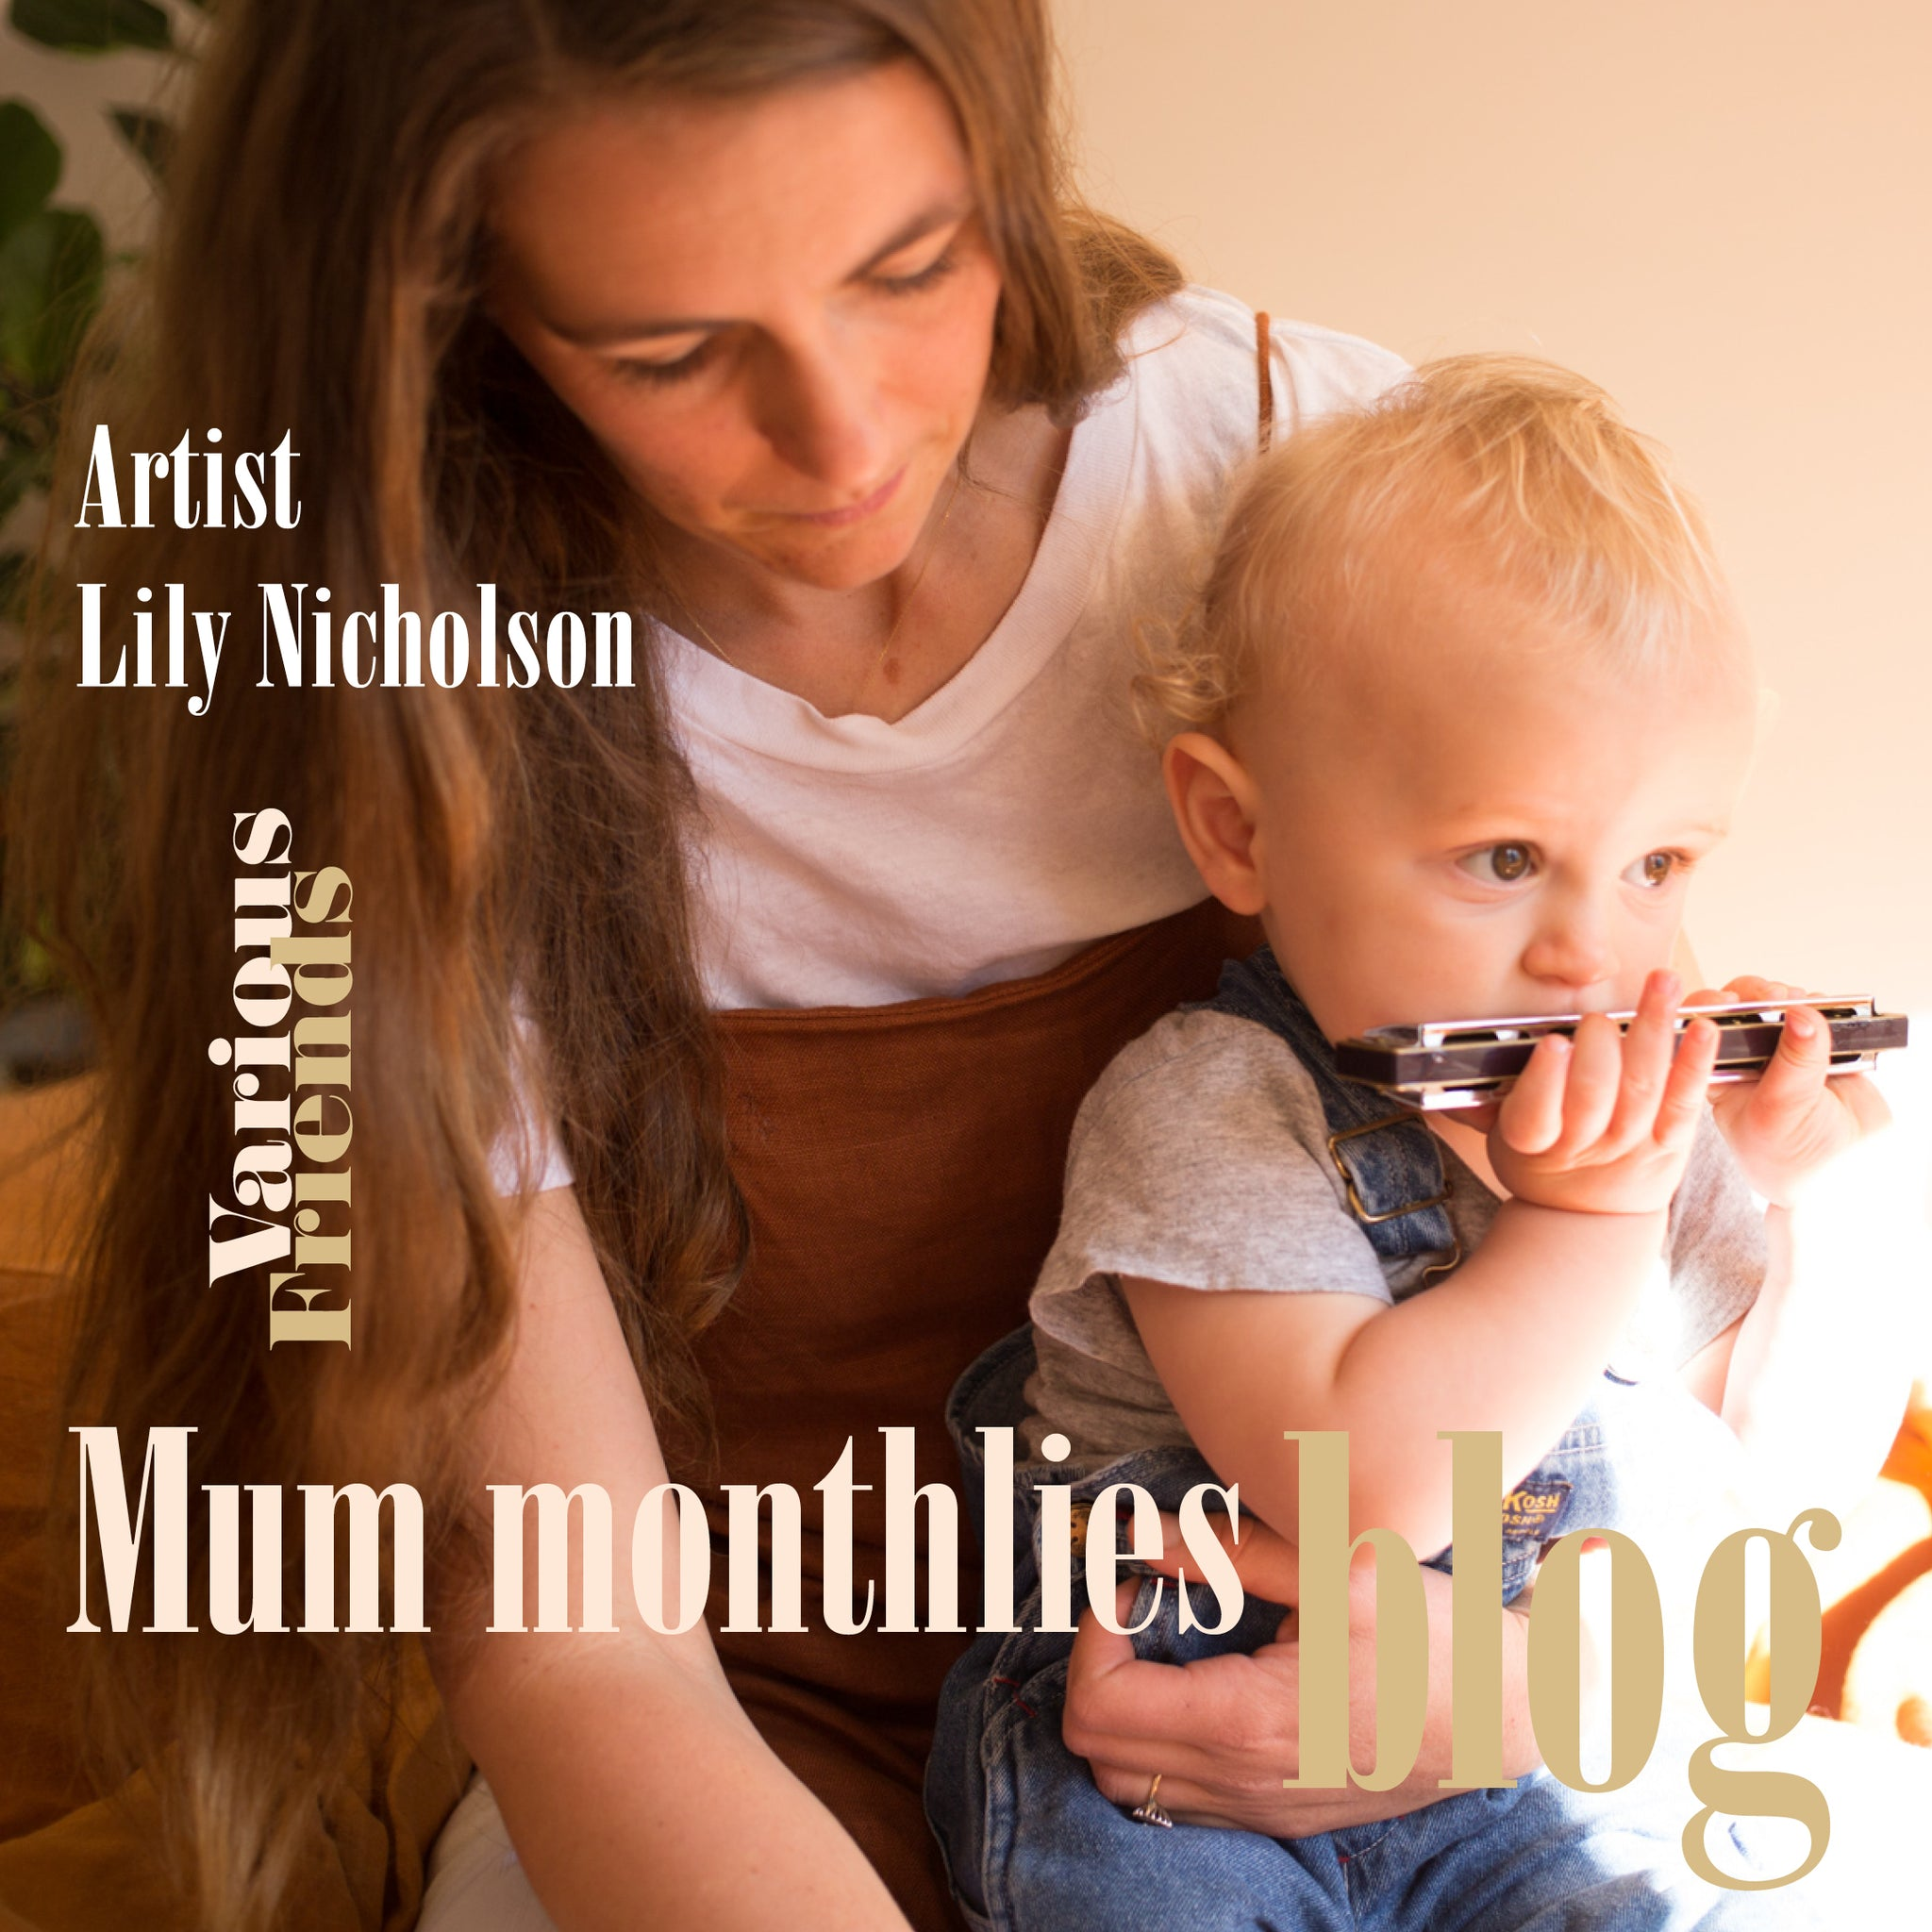 Mum Monthlies Leo Child- Lily Nicholson